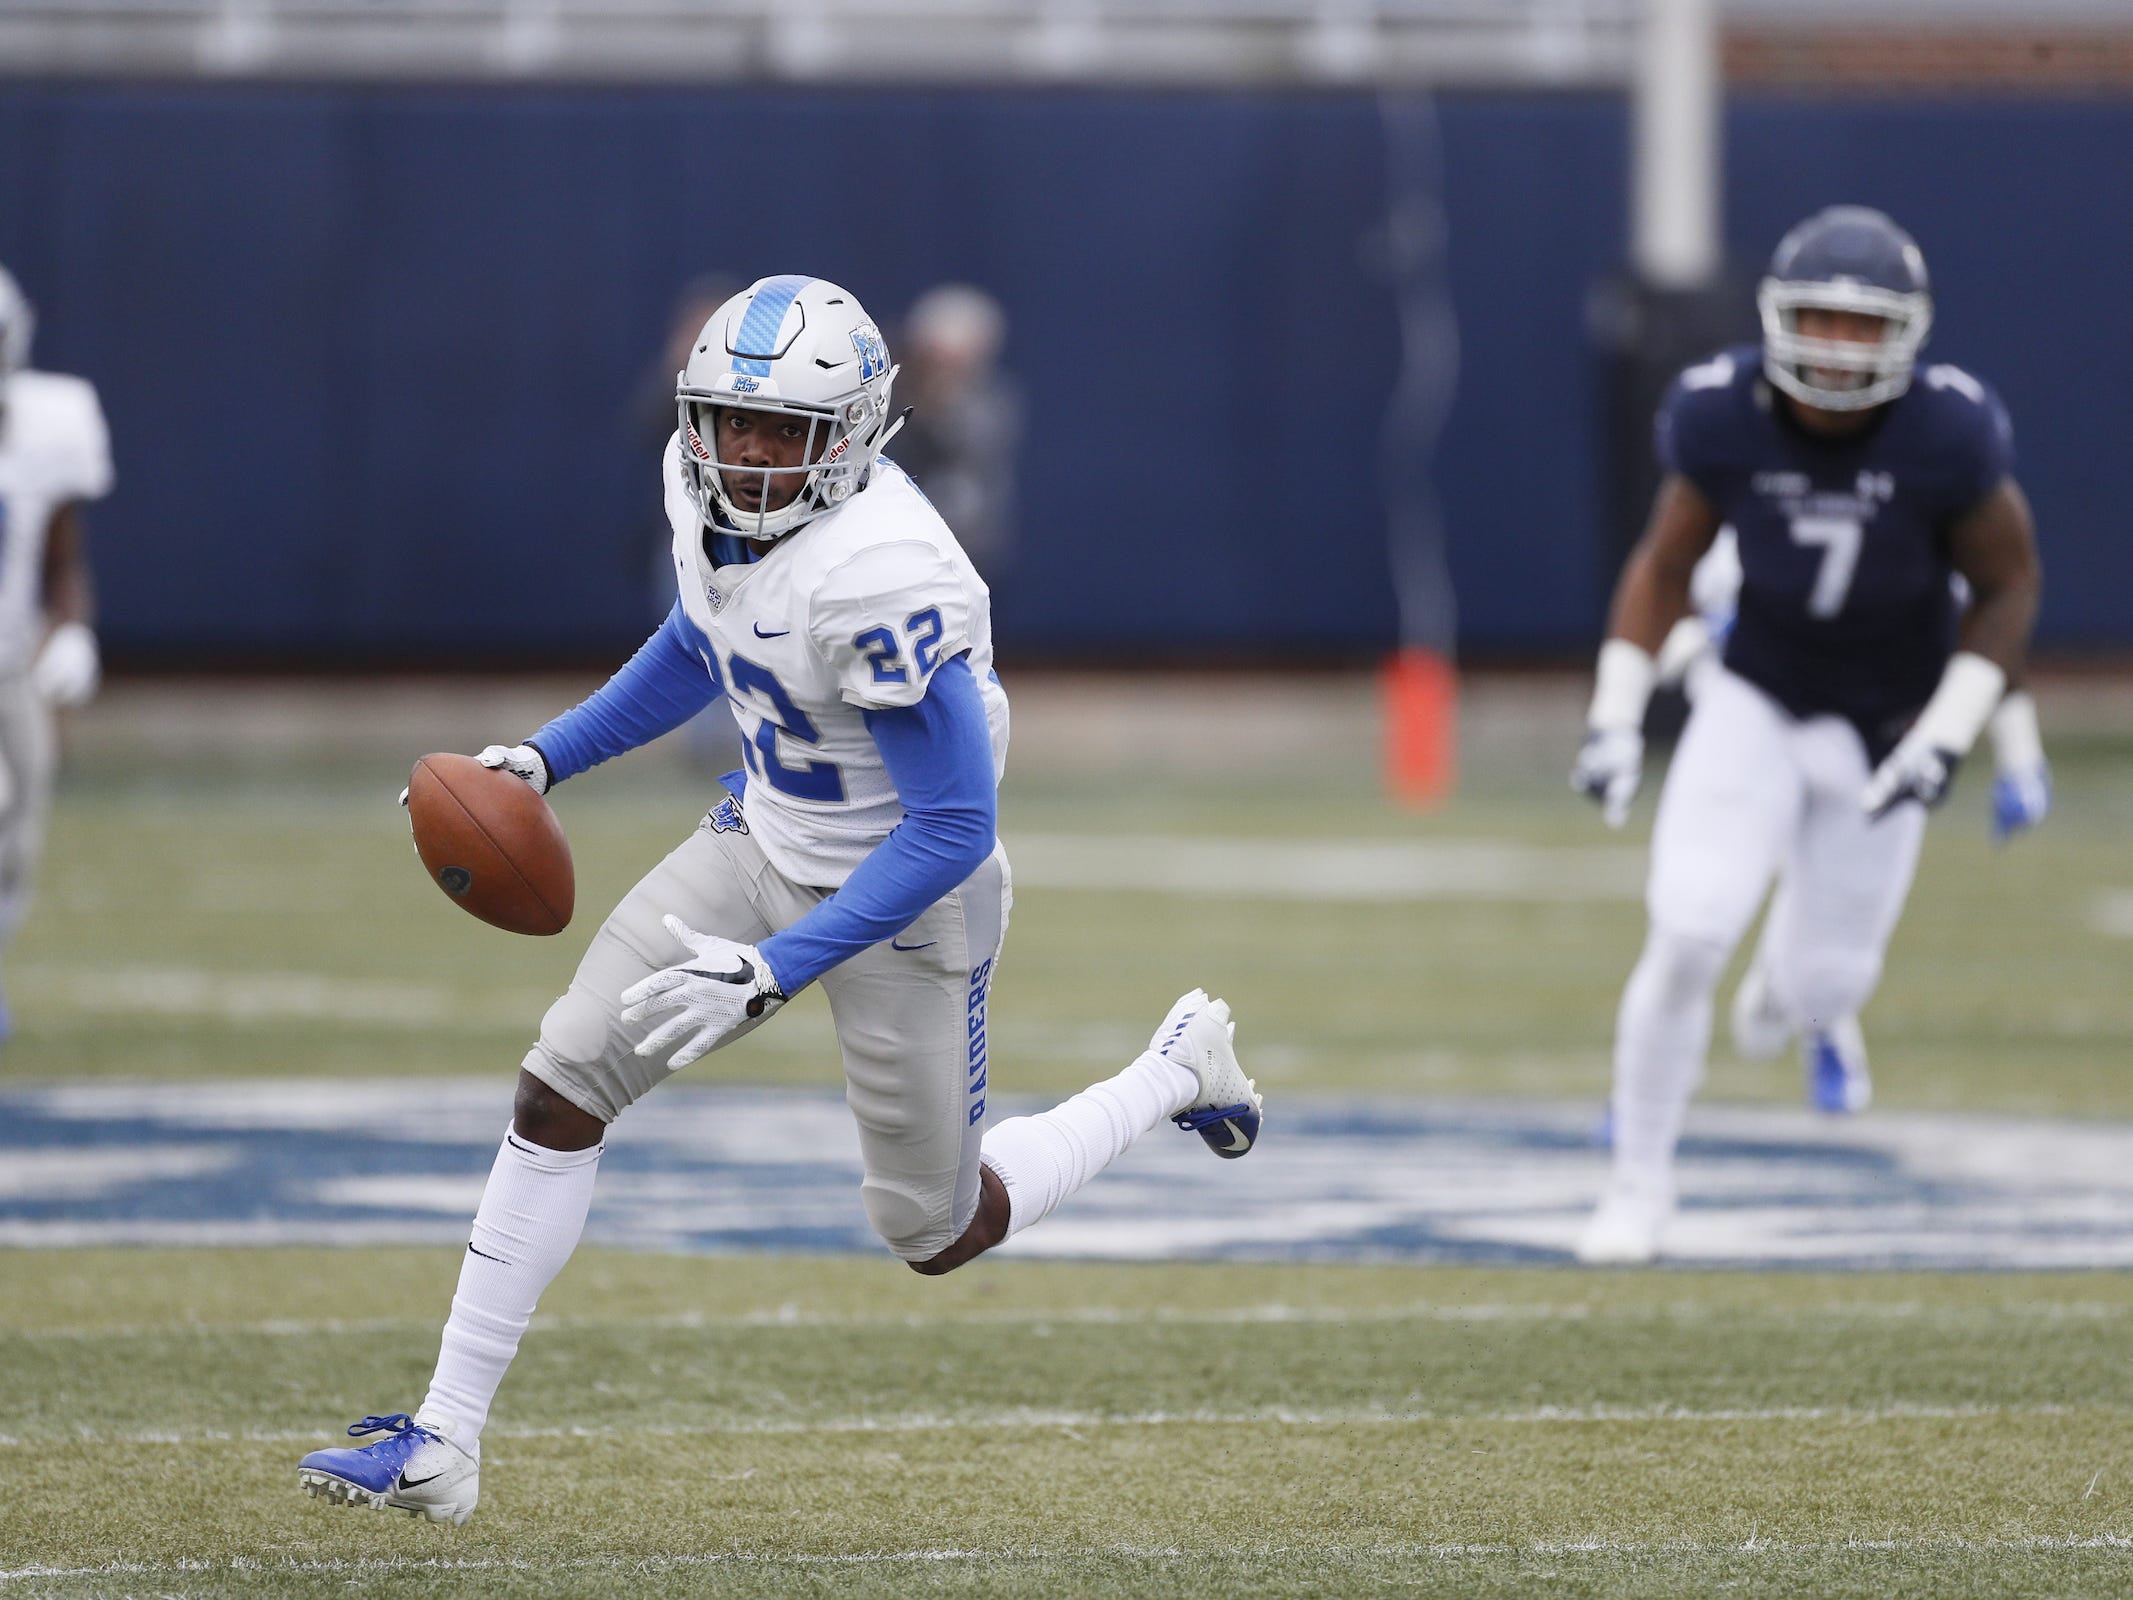 MTSU's Cordell Hudson to be released from Vanderbilt Hospital after leaving game on stretcher